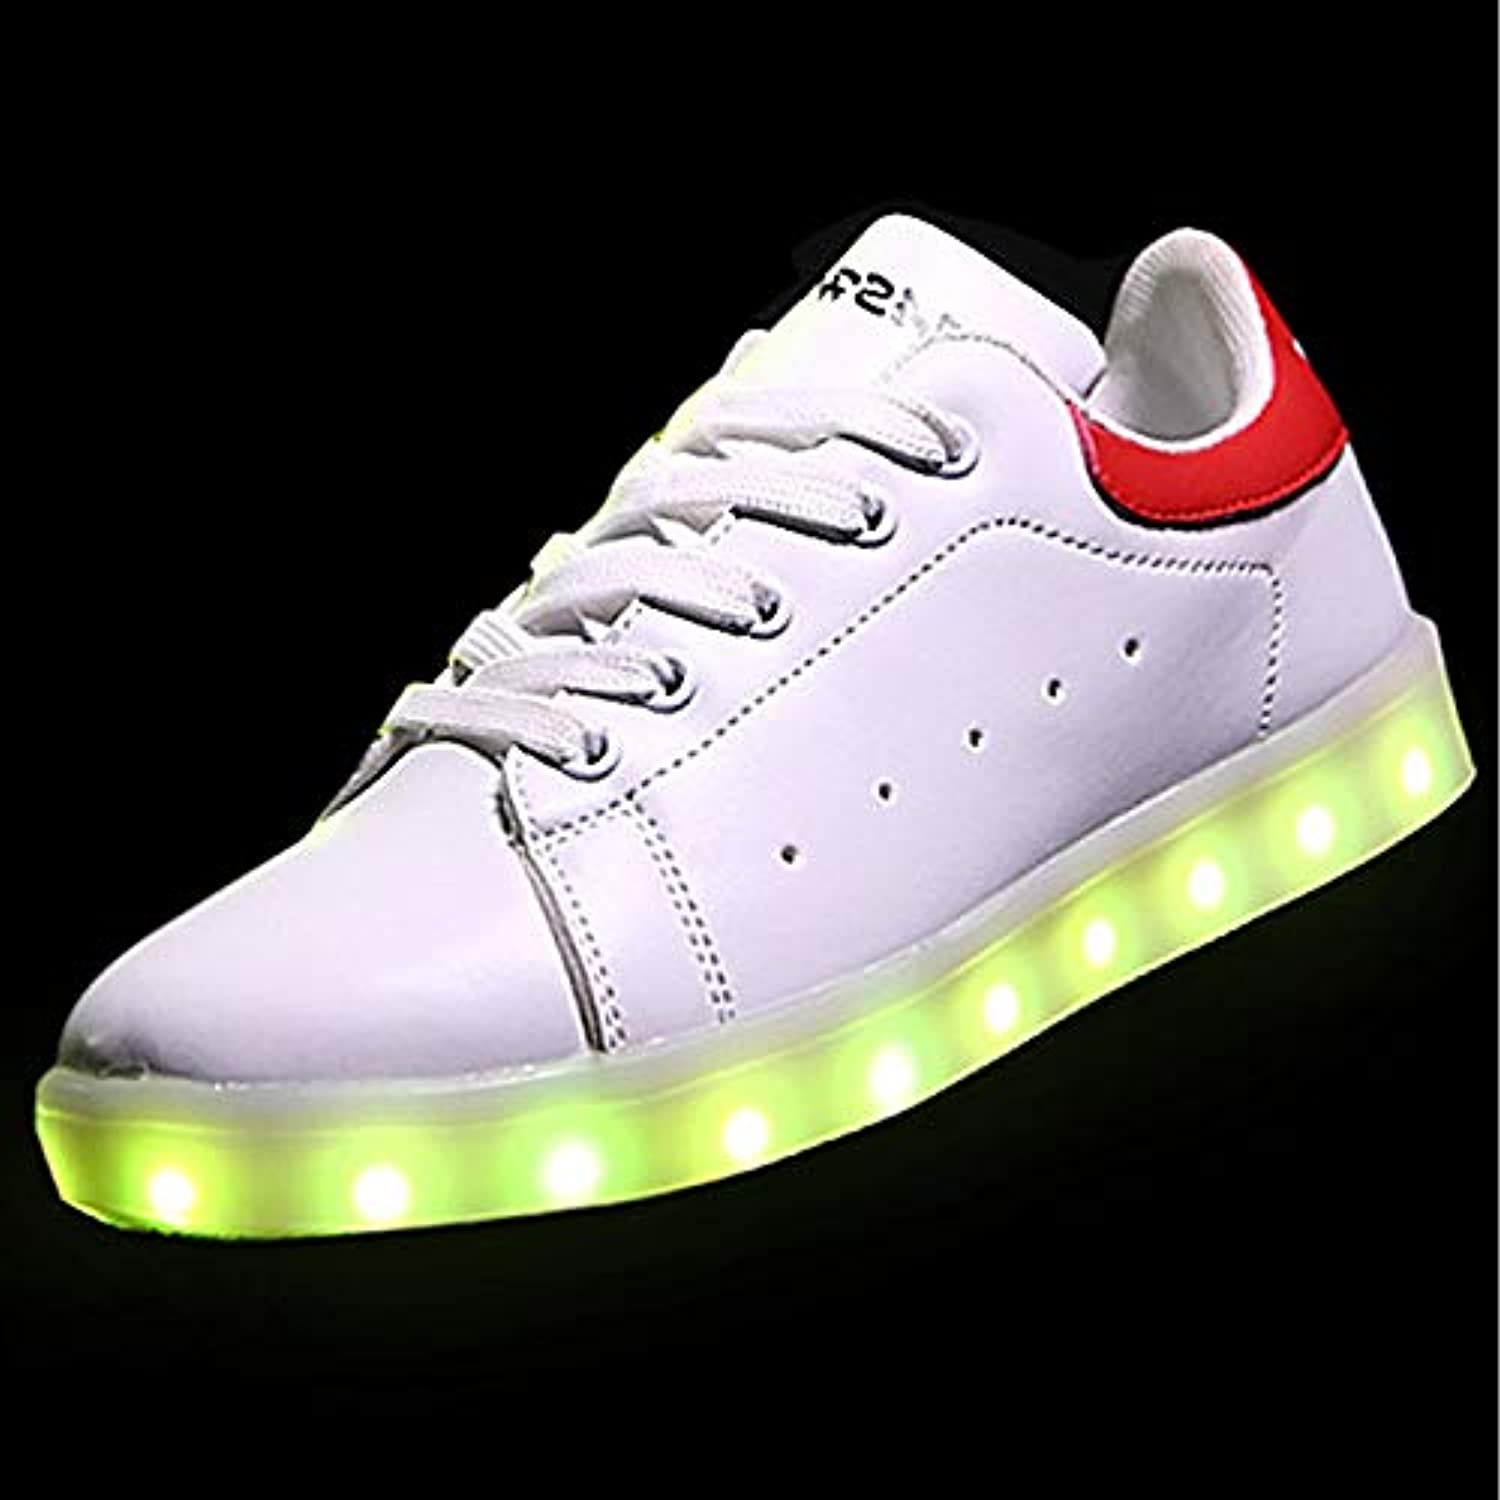 Women's shoes PU(Polyurethane) Spring Fall Light Up shoes Sneakers Round Toe Black Red